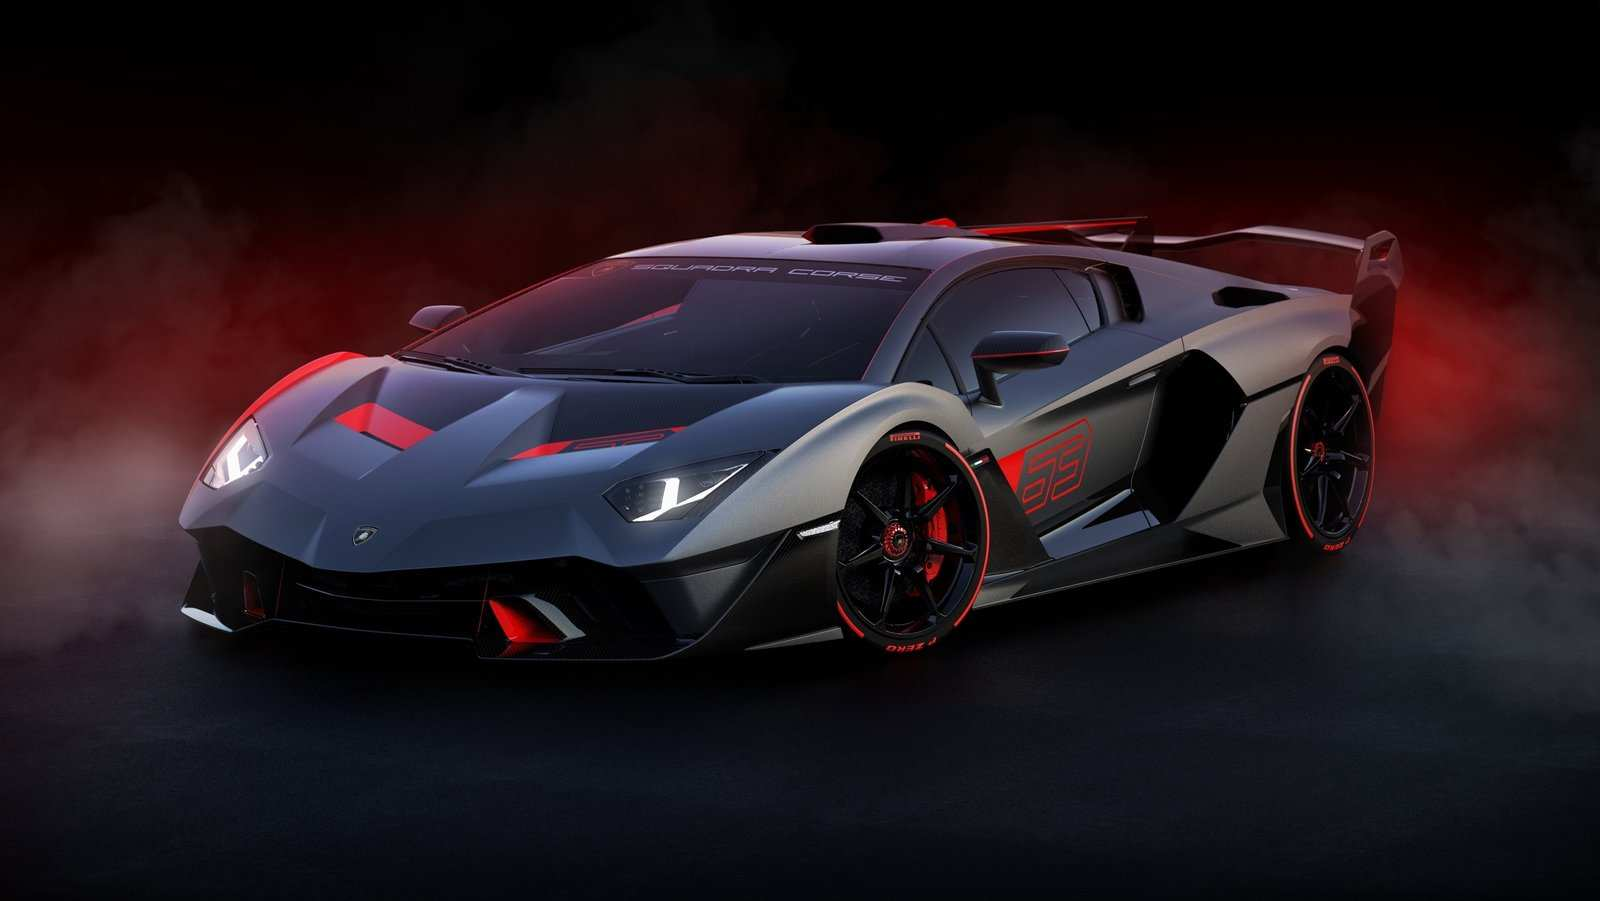 95 Best Review 2019 Lamborghini Horsepower Performance and New Engine with 2019 Lamborghini Horsepower